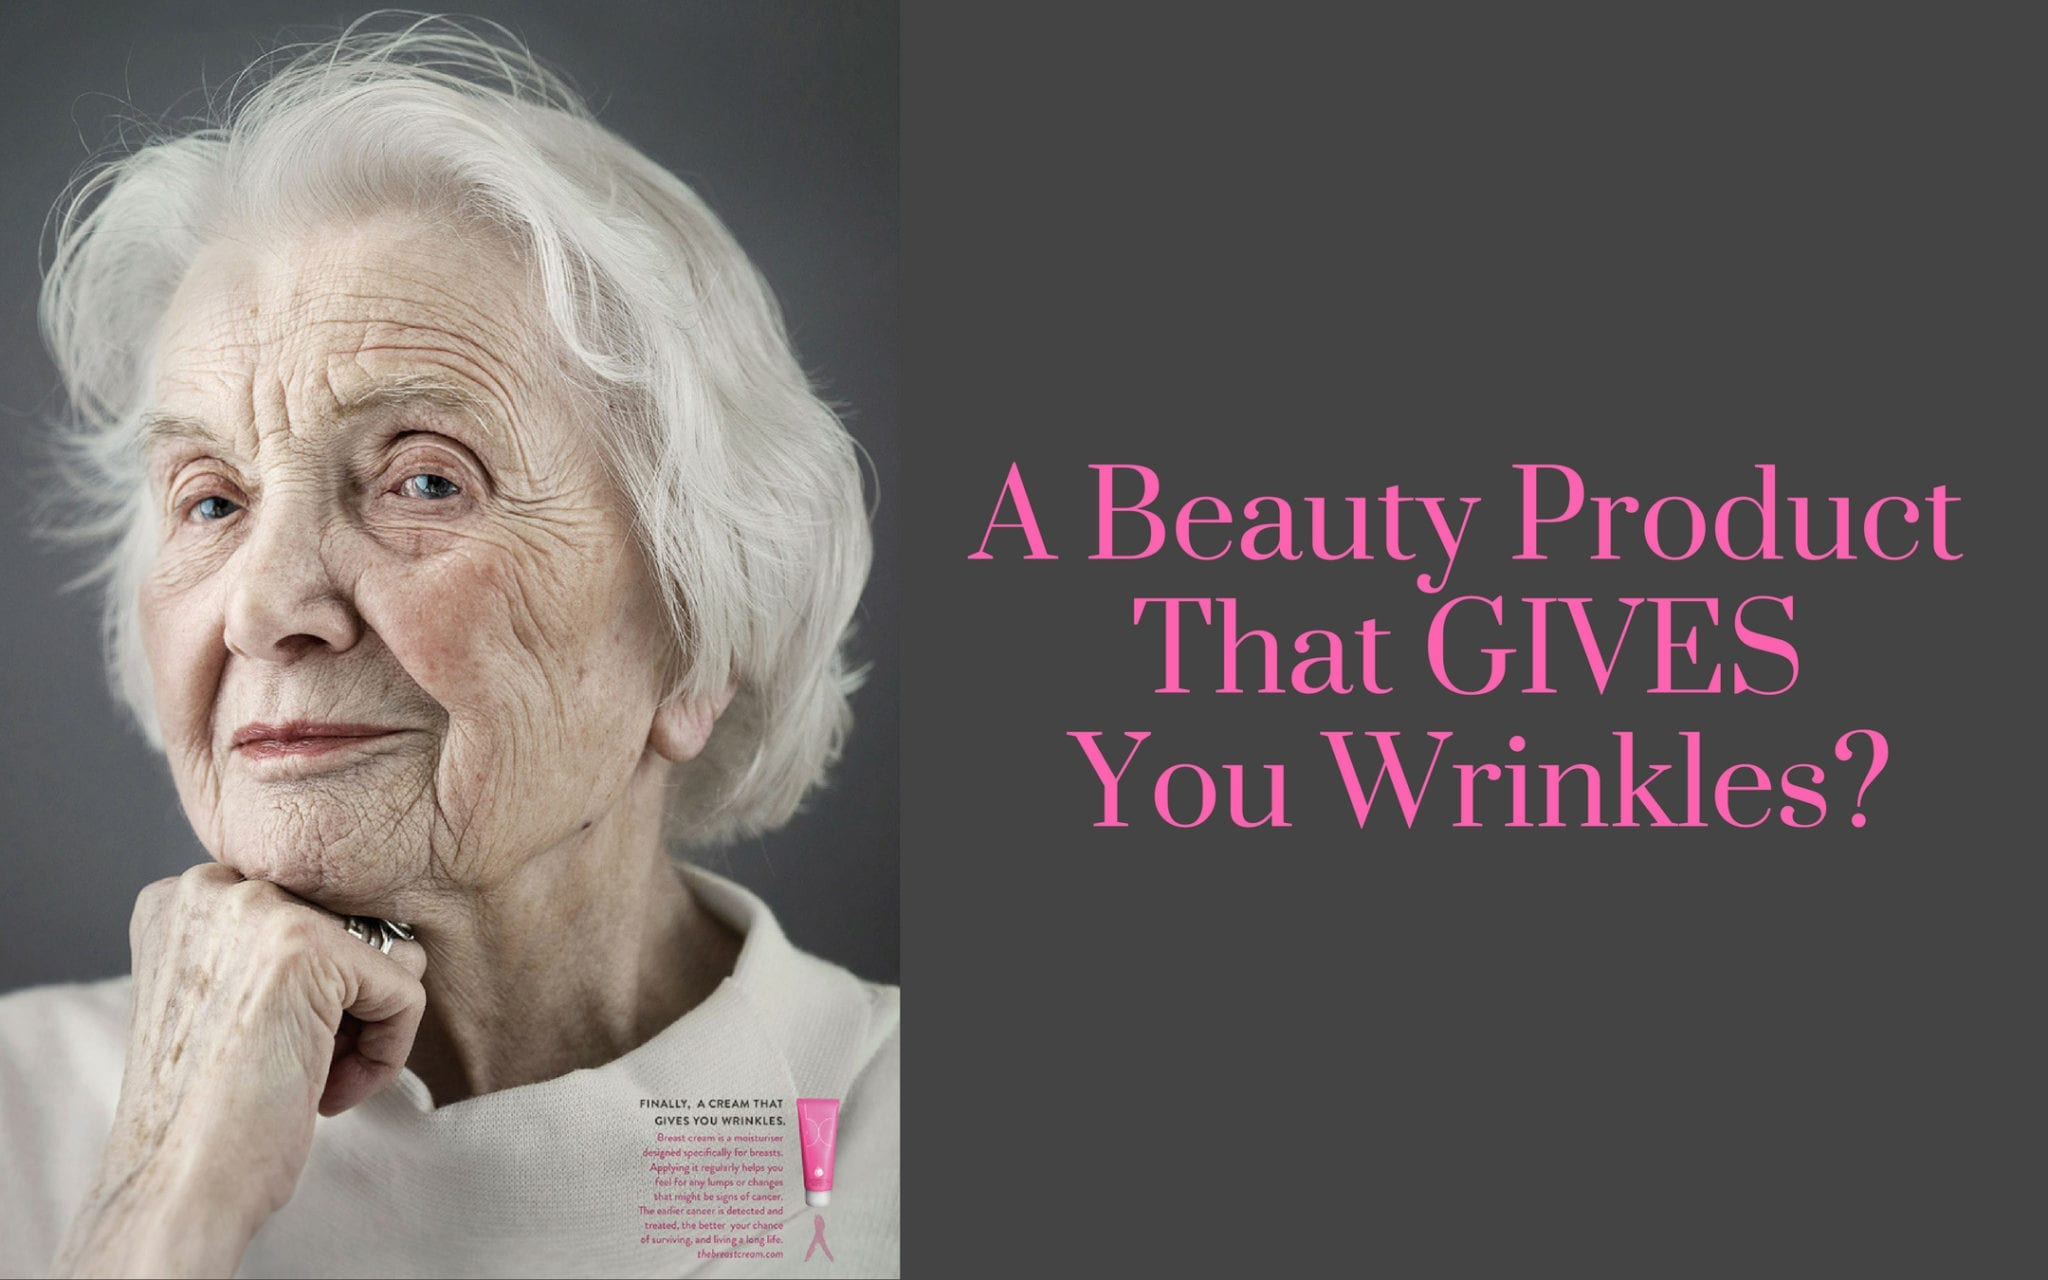 Campaign Advertising Beauty Product That Gives You Wrinkles